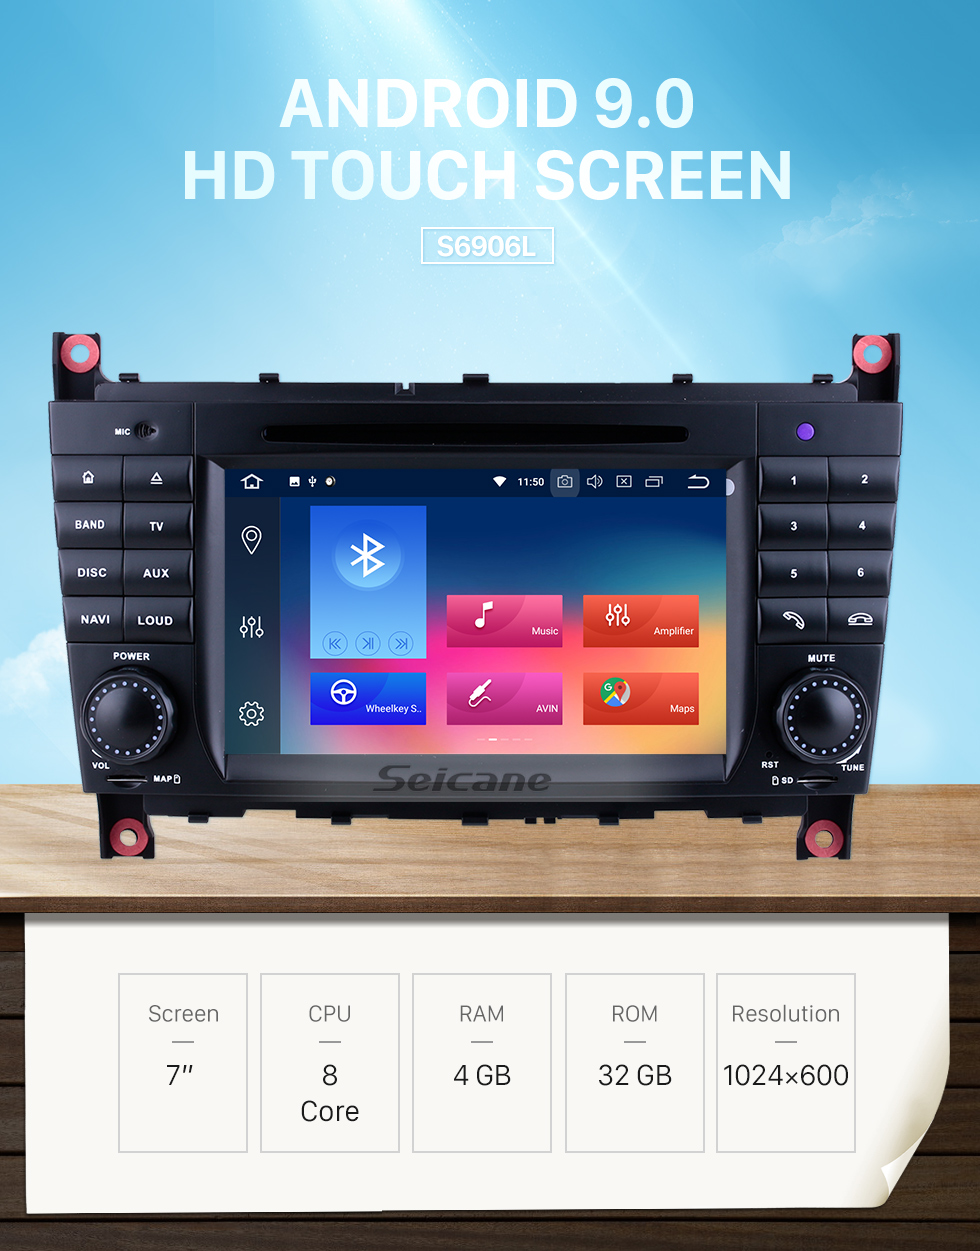 Seicane Aftermarket Radio Android 9.0 7 Inch DVD Player For 2004-2007 Mercedes Benz C Class W203 C180 C200 C220 C230 Car Stereo GPS Navigation System Bluetooth Phone WIFI Support 1080P Video OBDII DVR Steering Wheel Control